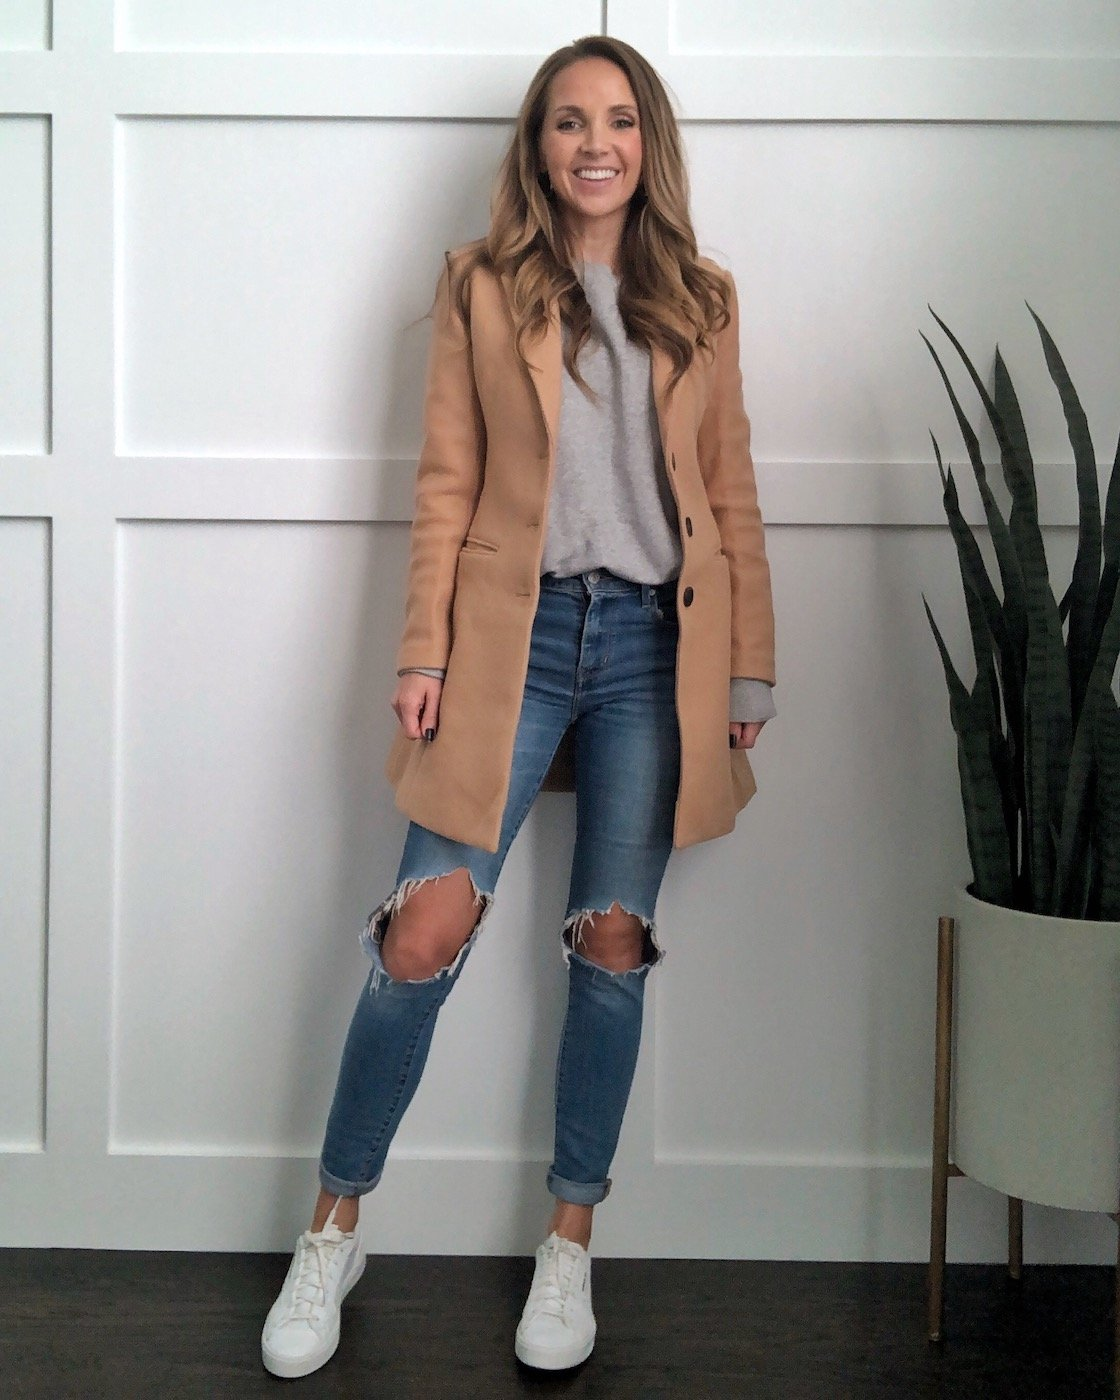 camel coat outfit with jeans and gray sweatshirt